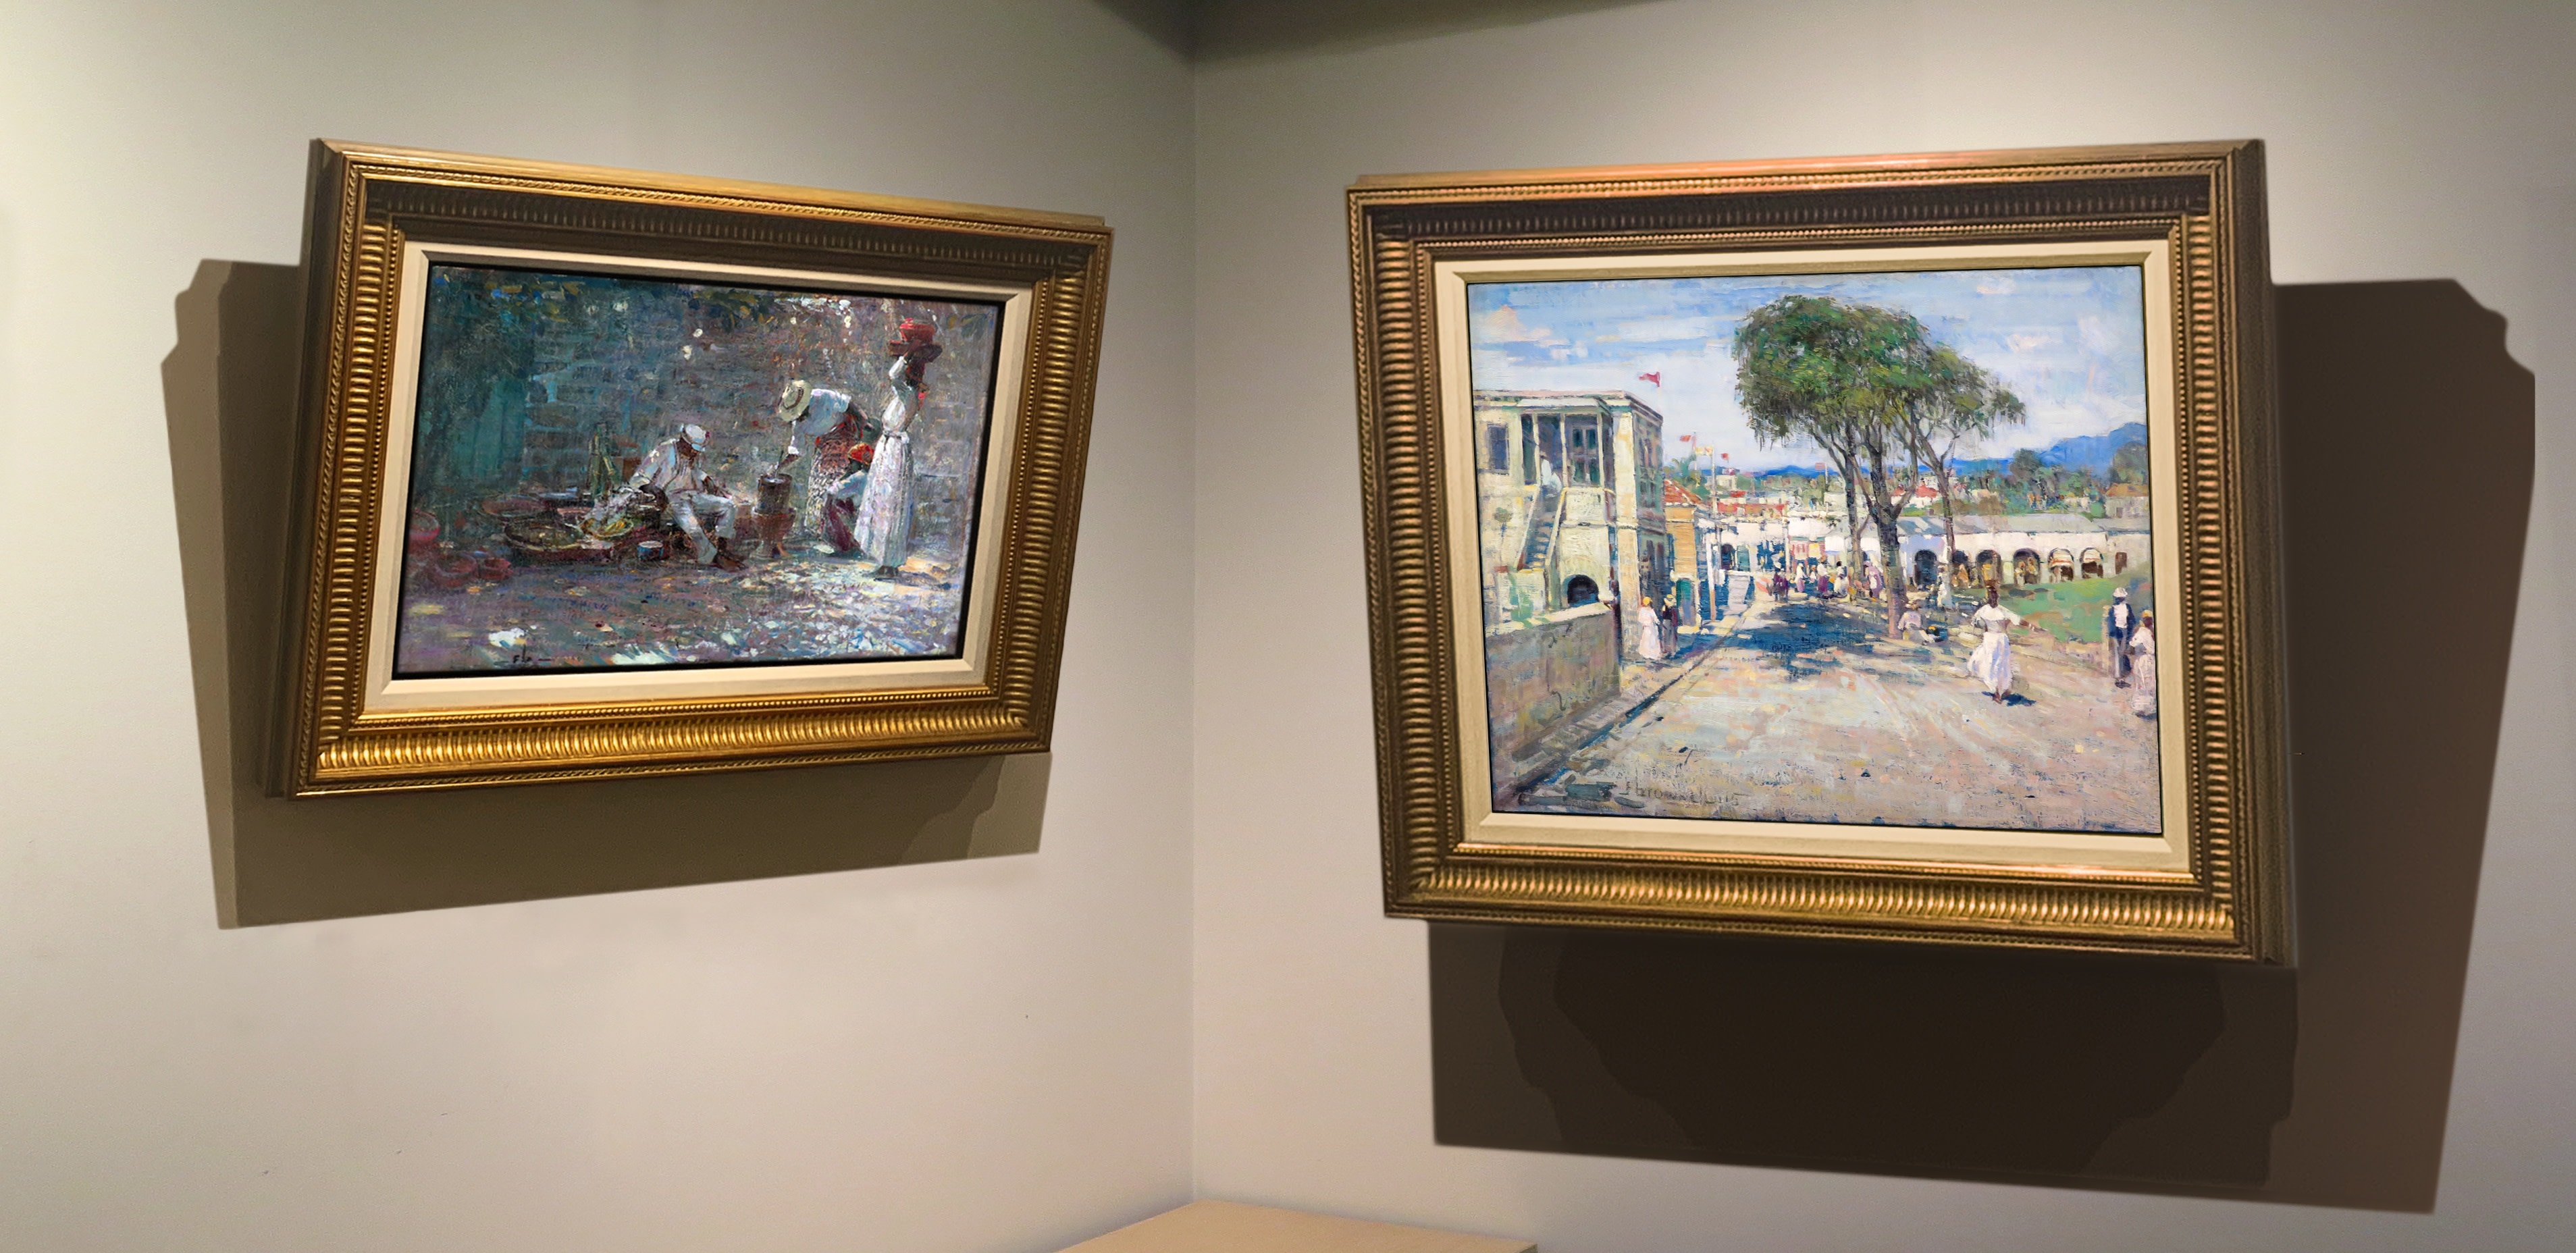 At the Well (Scene in the West Indies), c. 1915 and Street Scene, West Indies, 1915, Alan Klinkhoff Gallery, February 2019